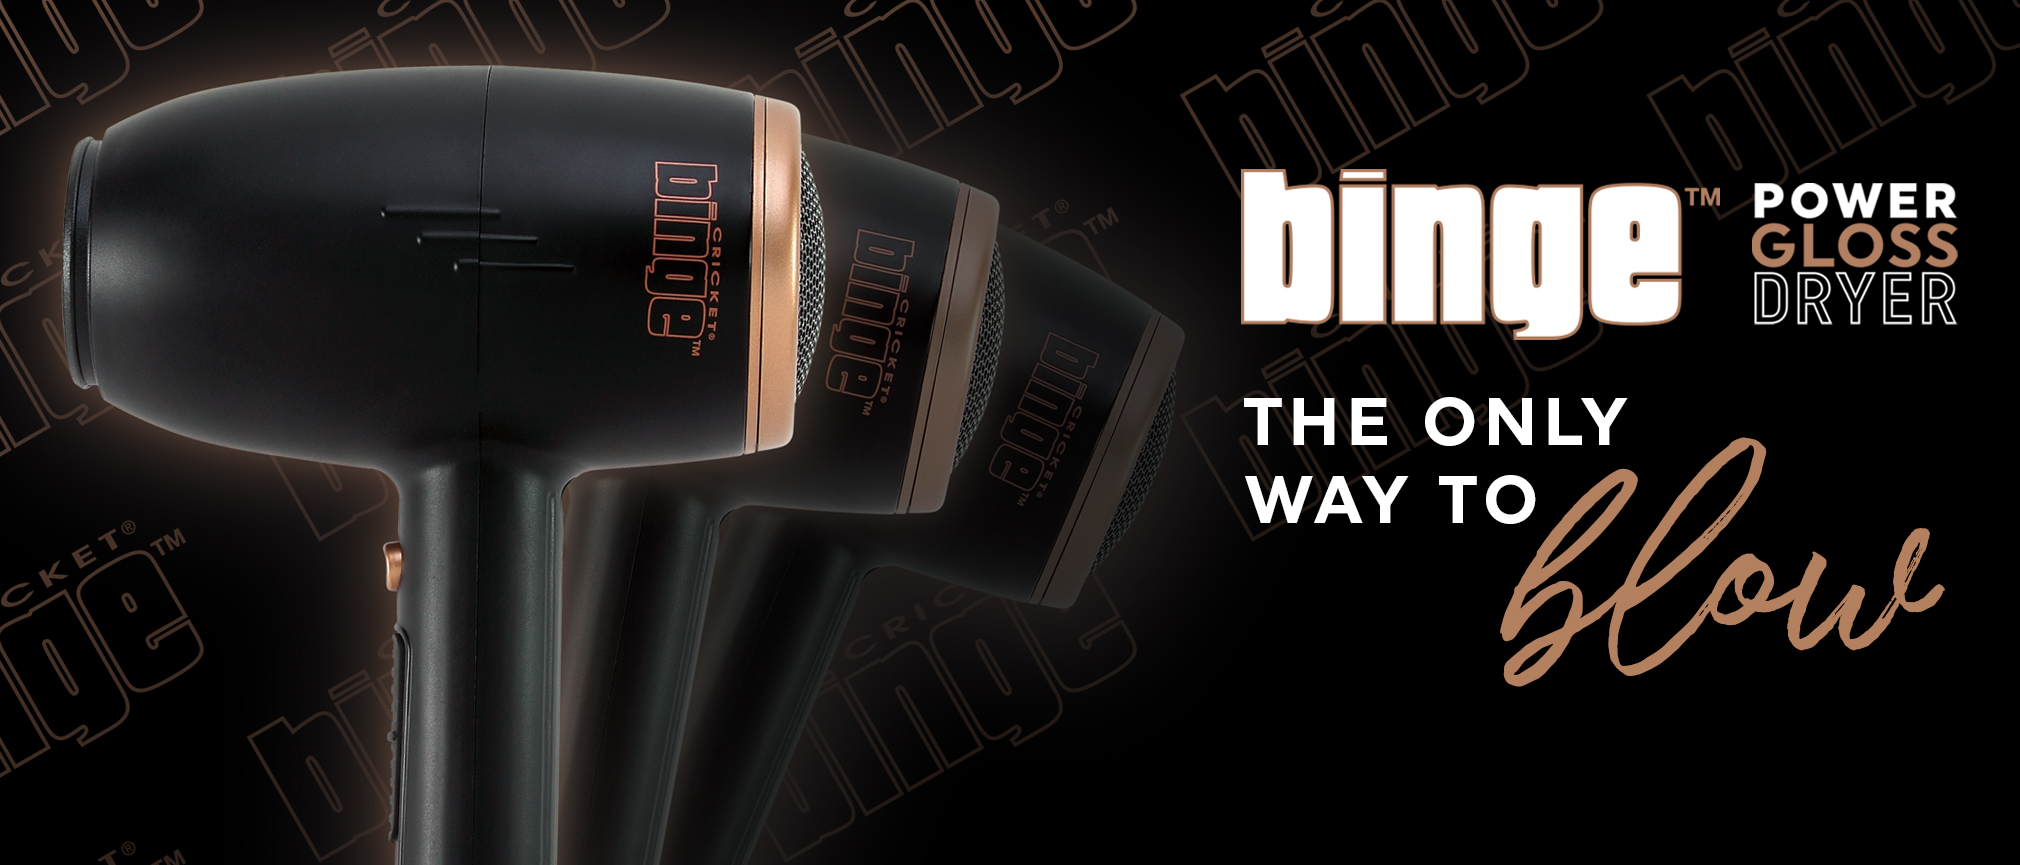 Binge Power Gloss Hair Dryer the only way to blow